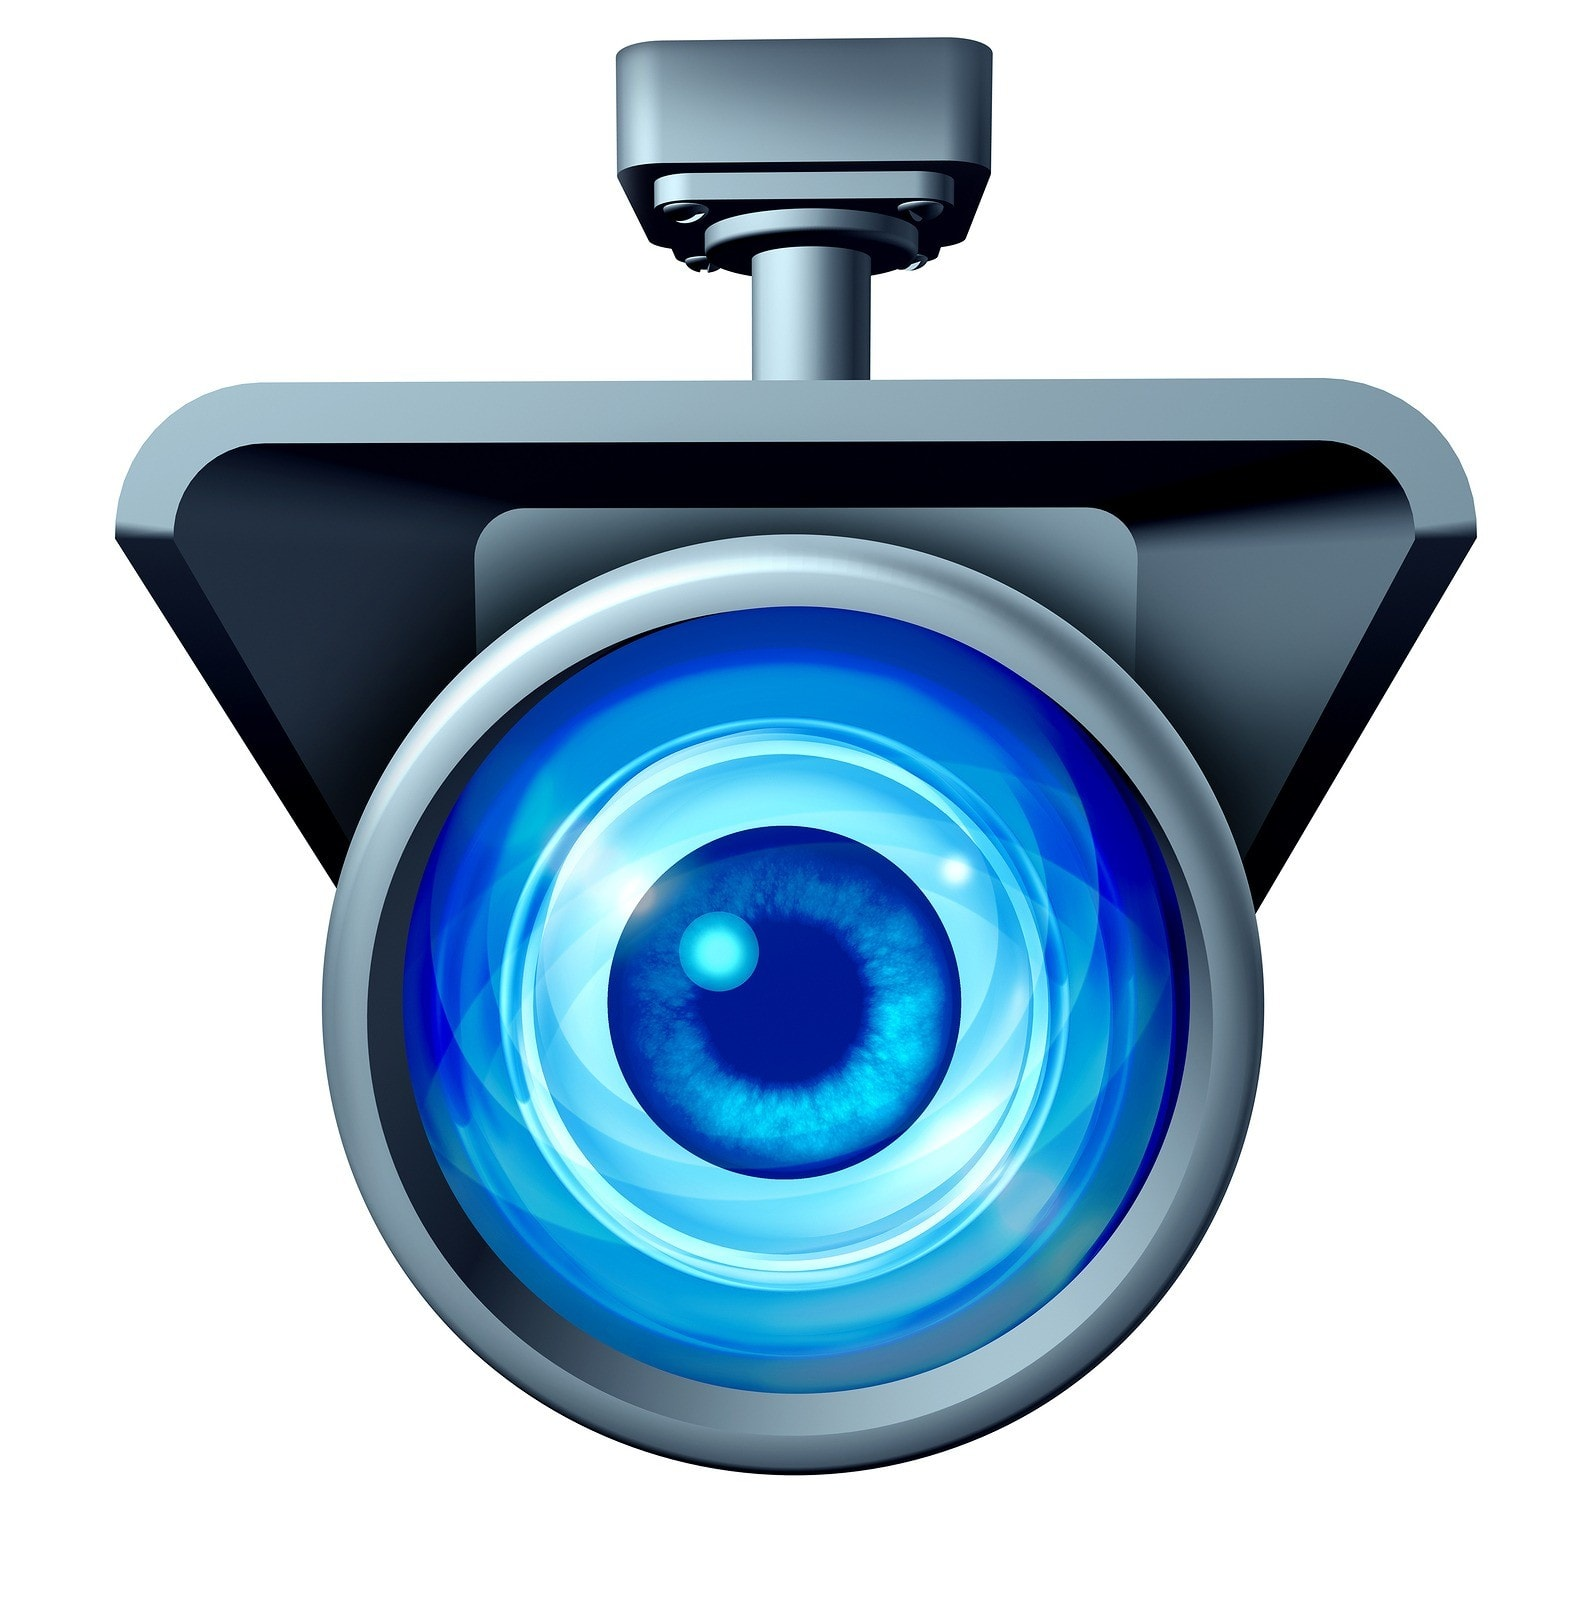 office spy cams and employee surveillance. Black Bedroom Furniture Sets. Home Design Ideas